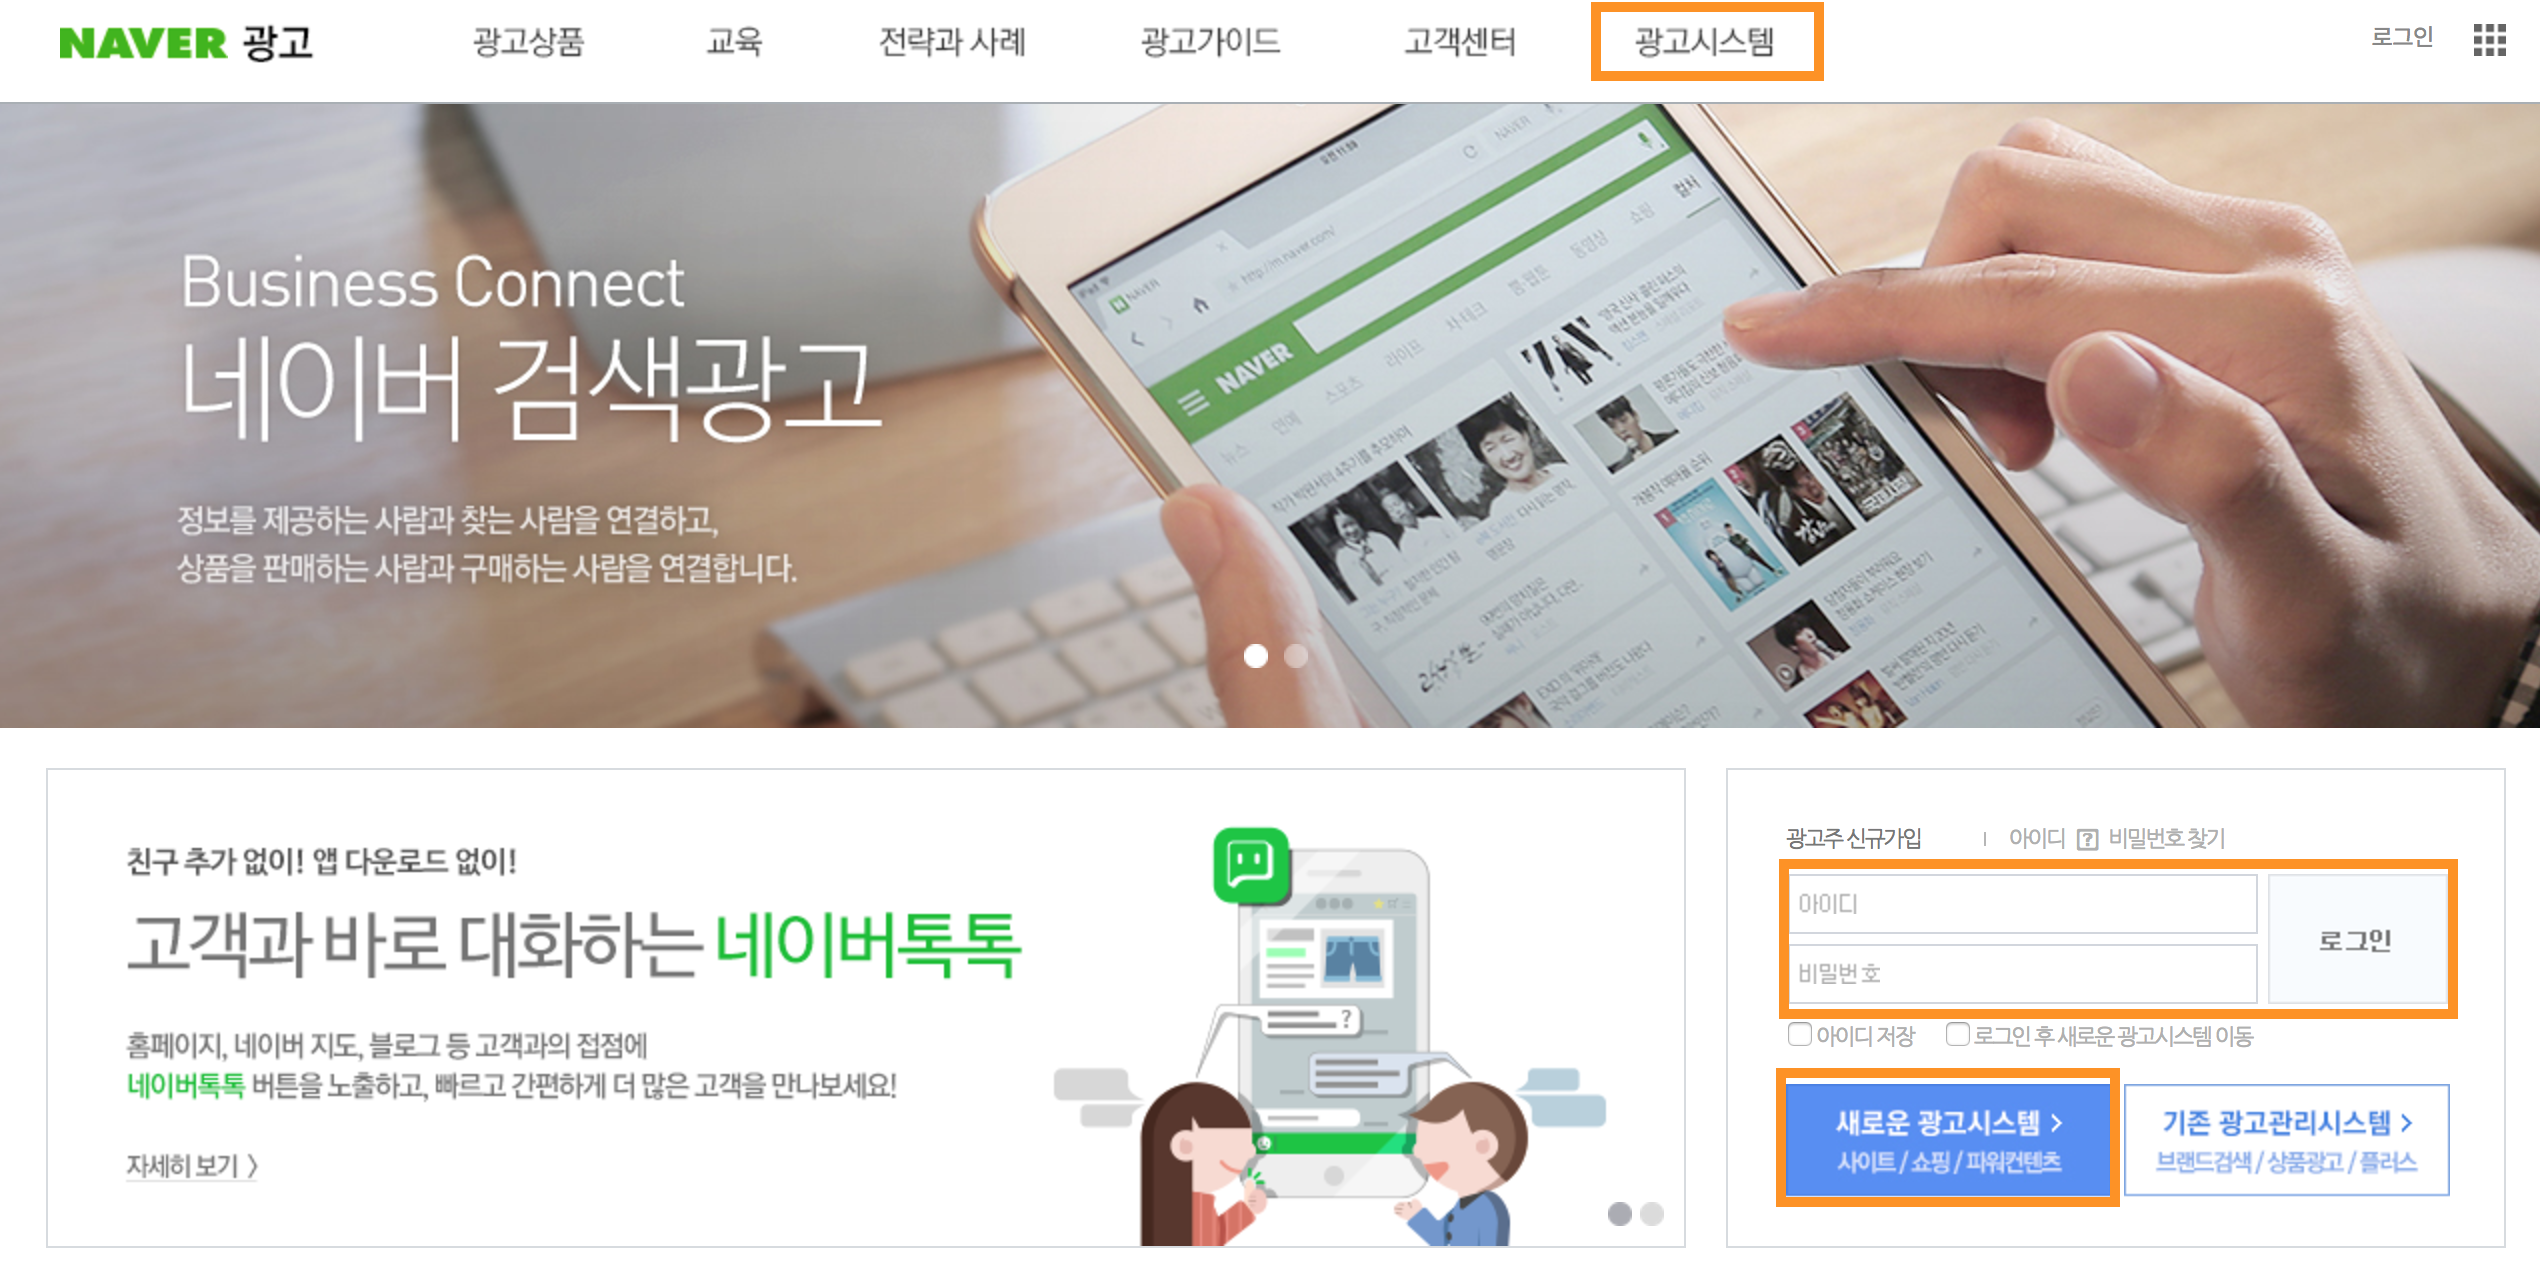 codemshop-wordepress-mysite-naver